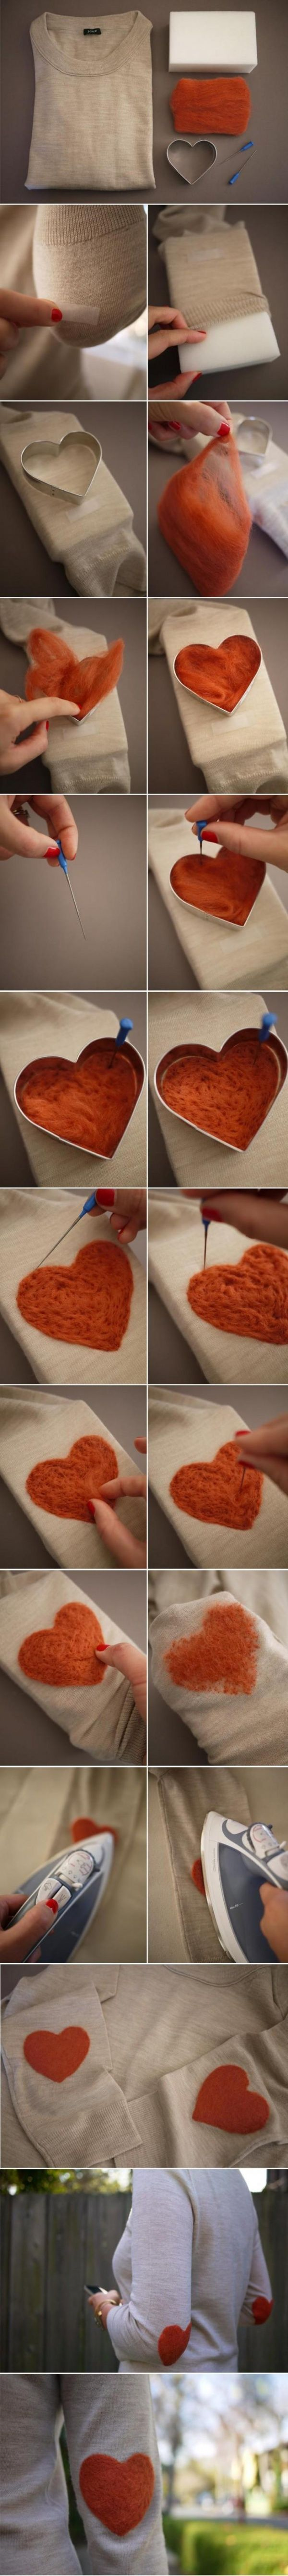 #DIY Felting - this is actually really easy to do... I may have to make these heart elbow patched for a blazer for my baby girl... so cute :)